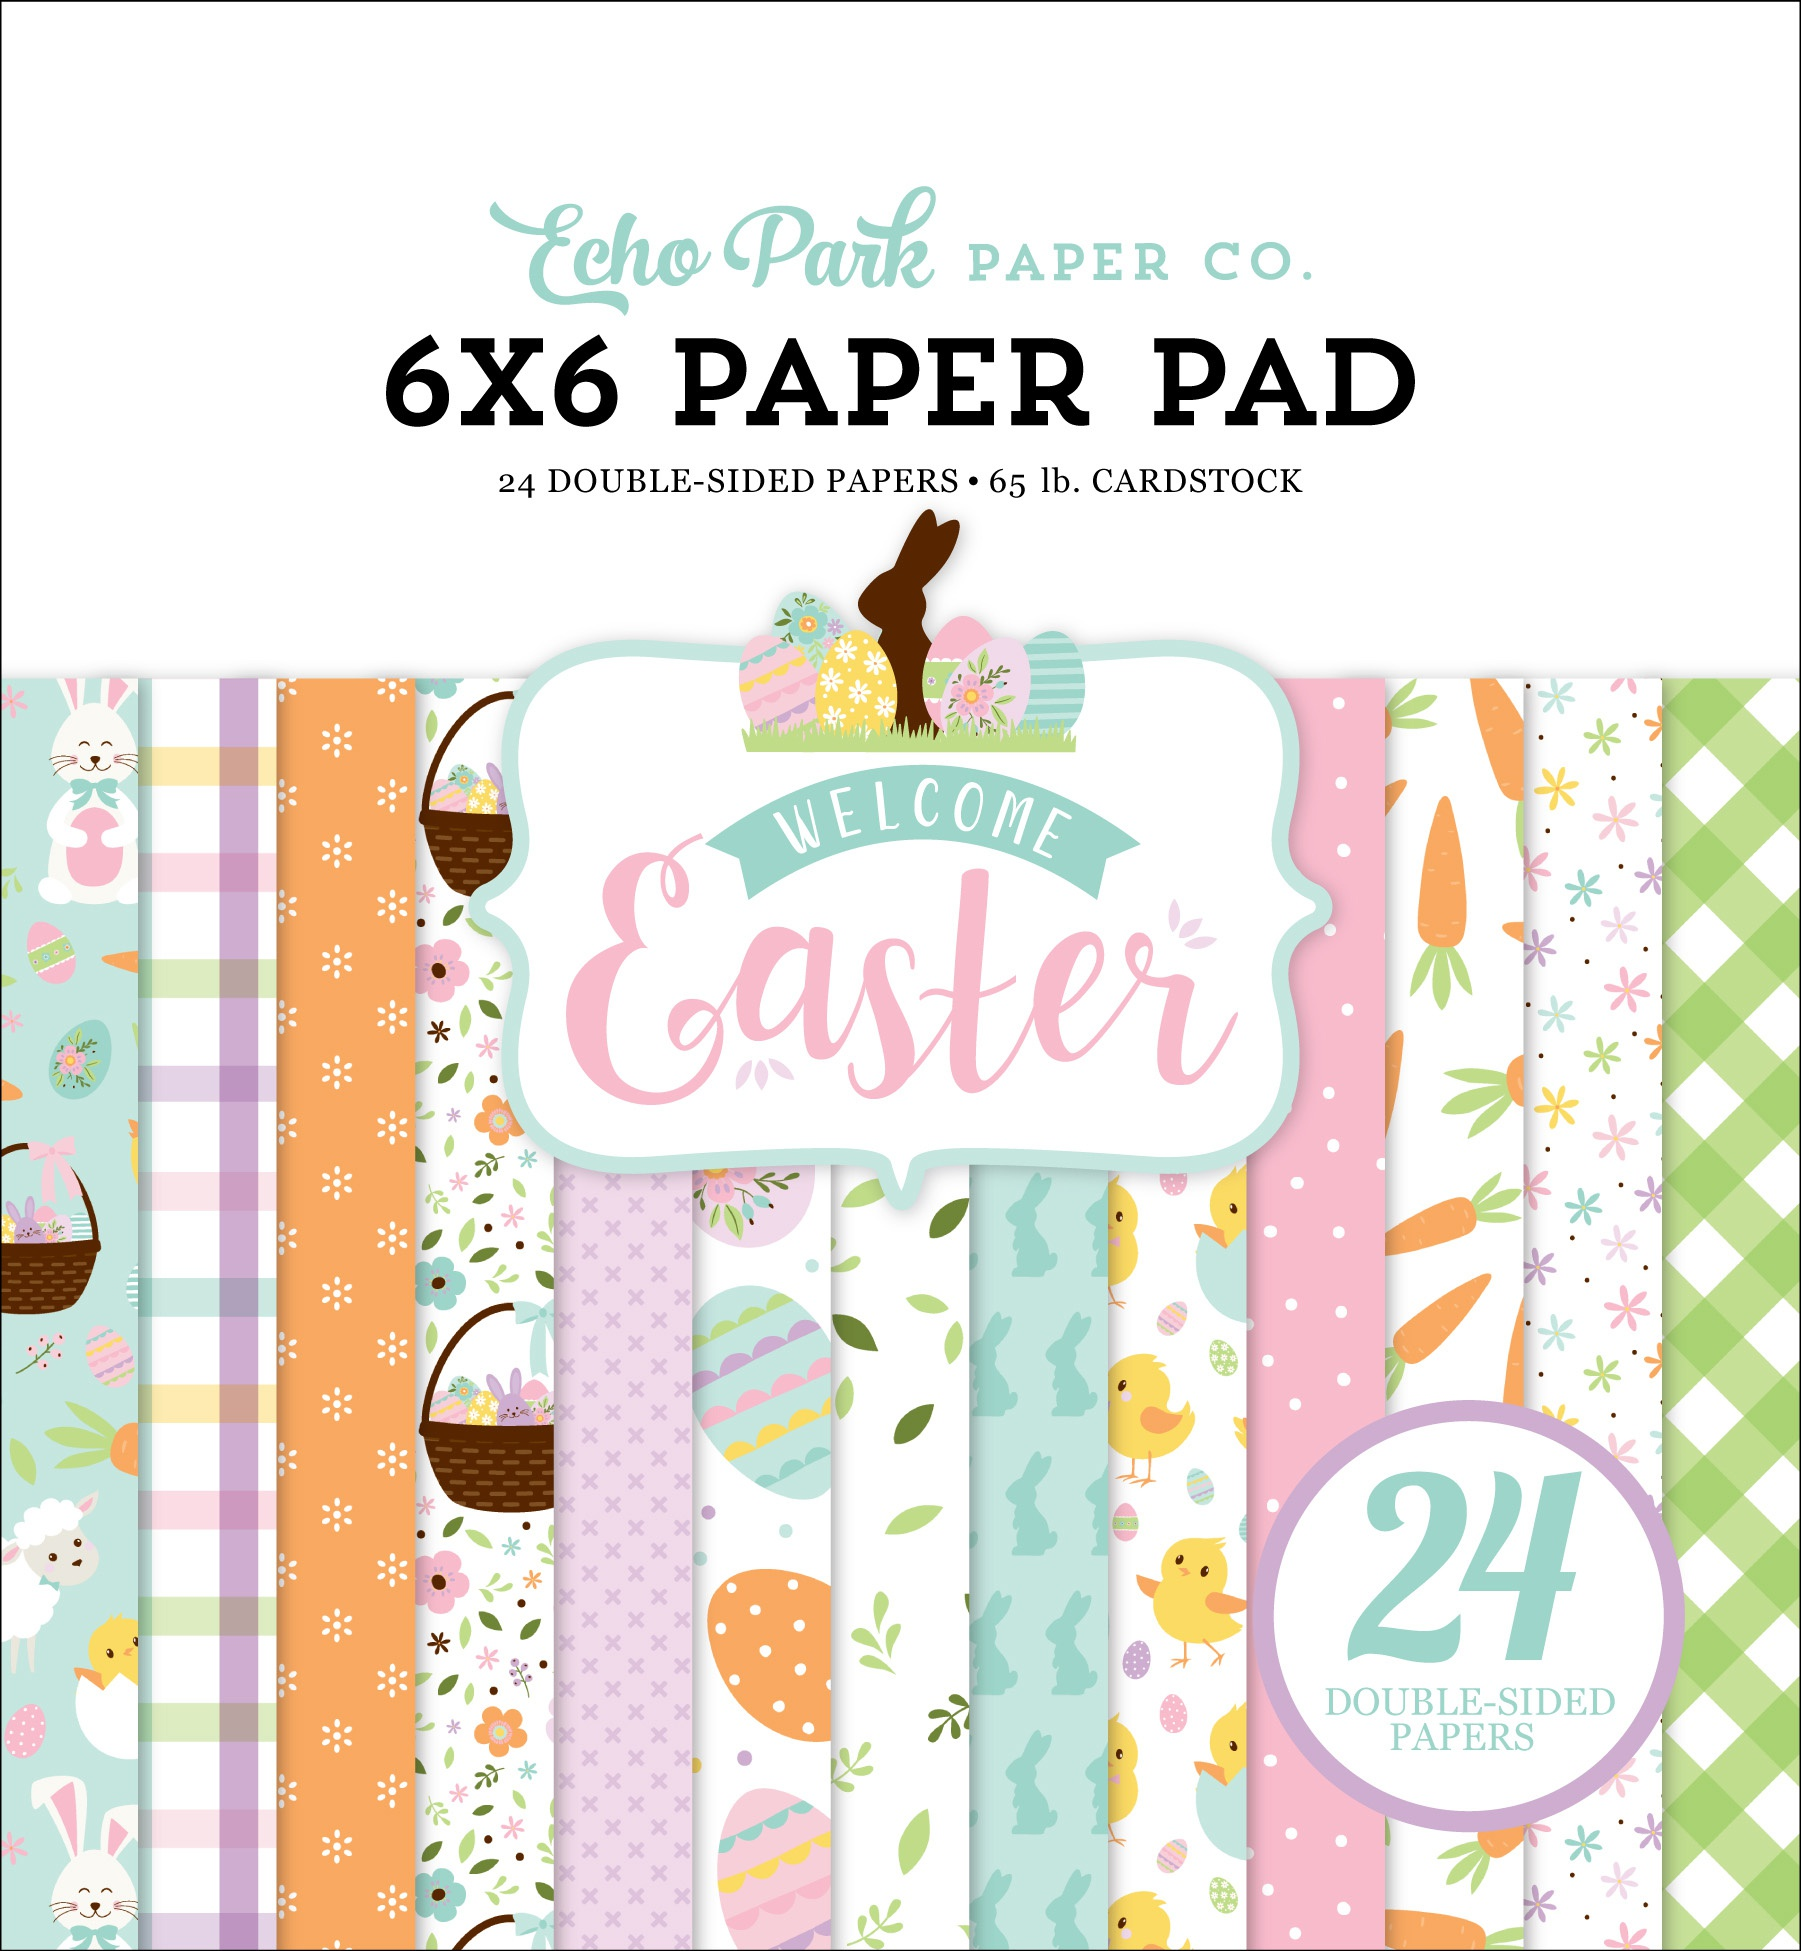 Echo Park Double-Sided Paper Pad 6X6 24/Pkg-Welcome Easter